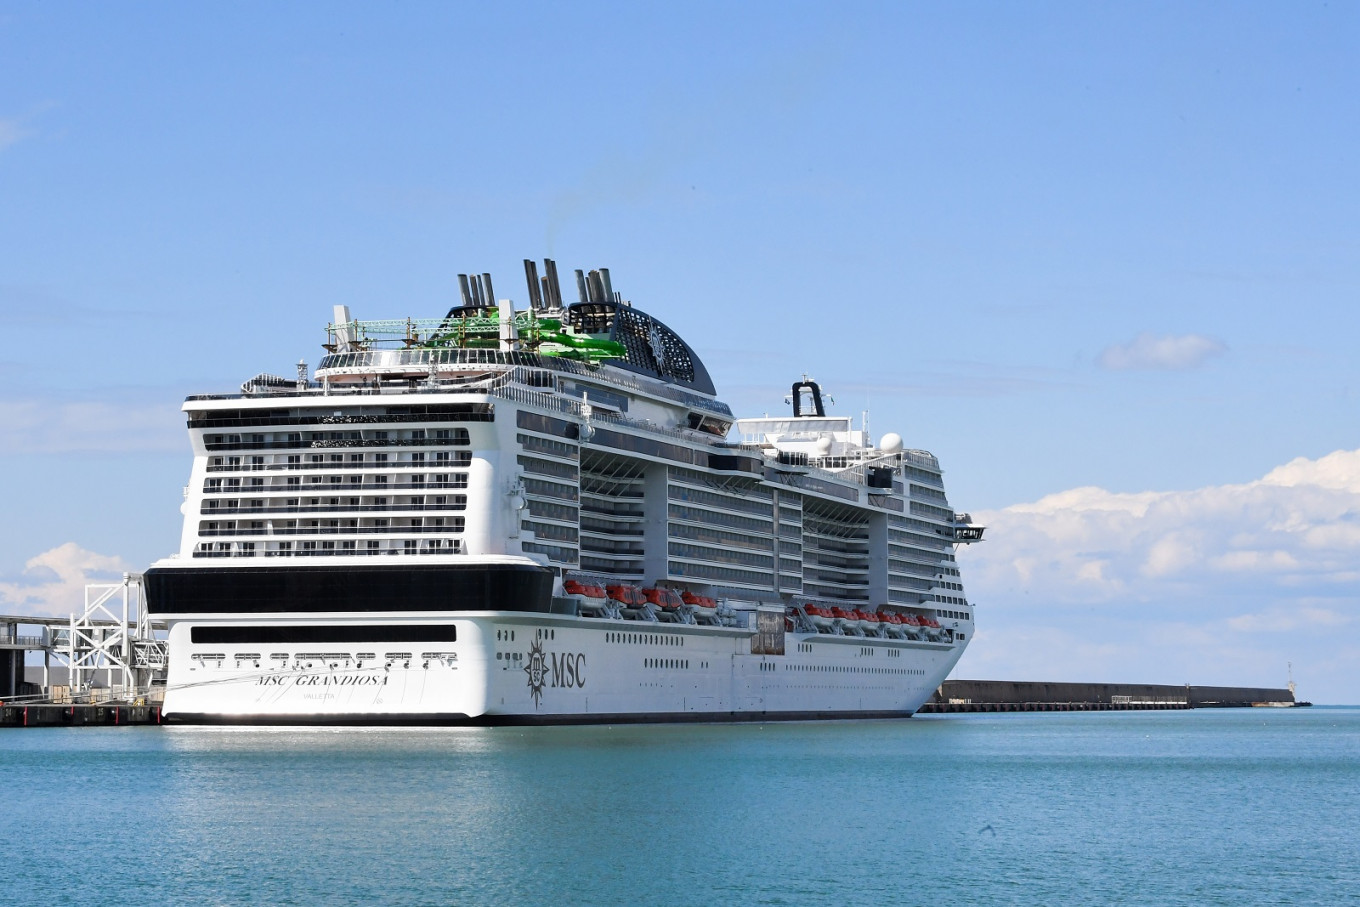 MSC Grandiosa departure sees cruise sector return in Europe